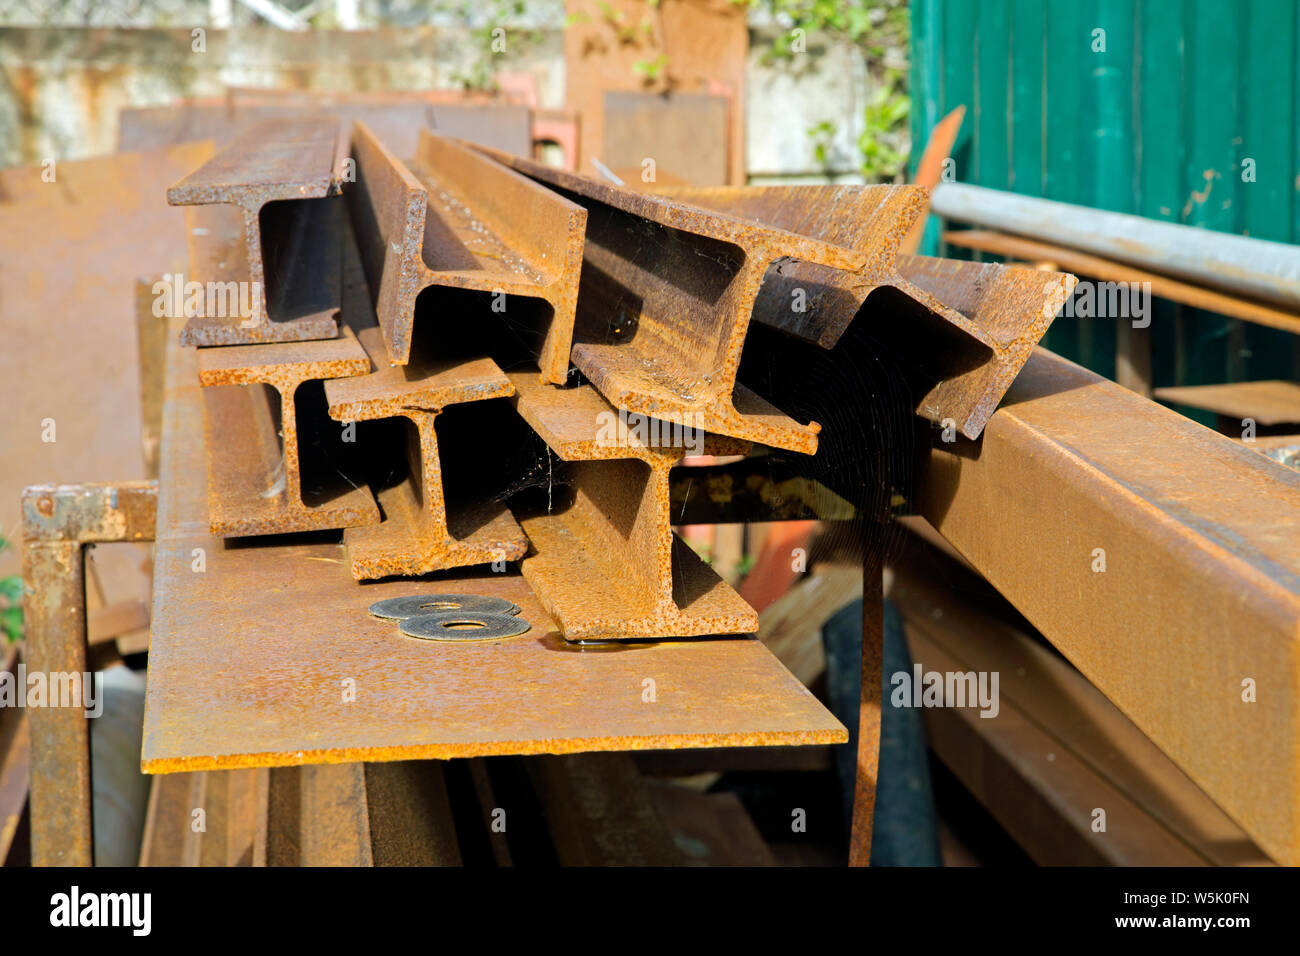 A heap of rusted iron girders or rolled steel joists left outside in a yard Stock Photo